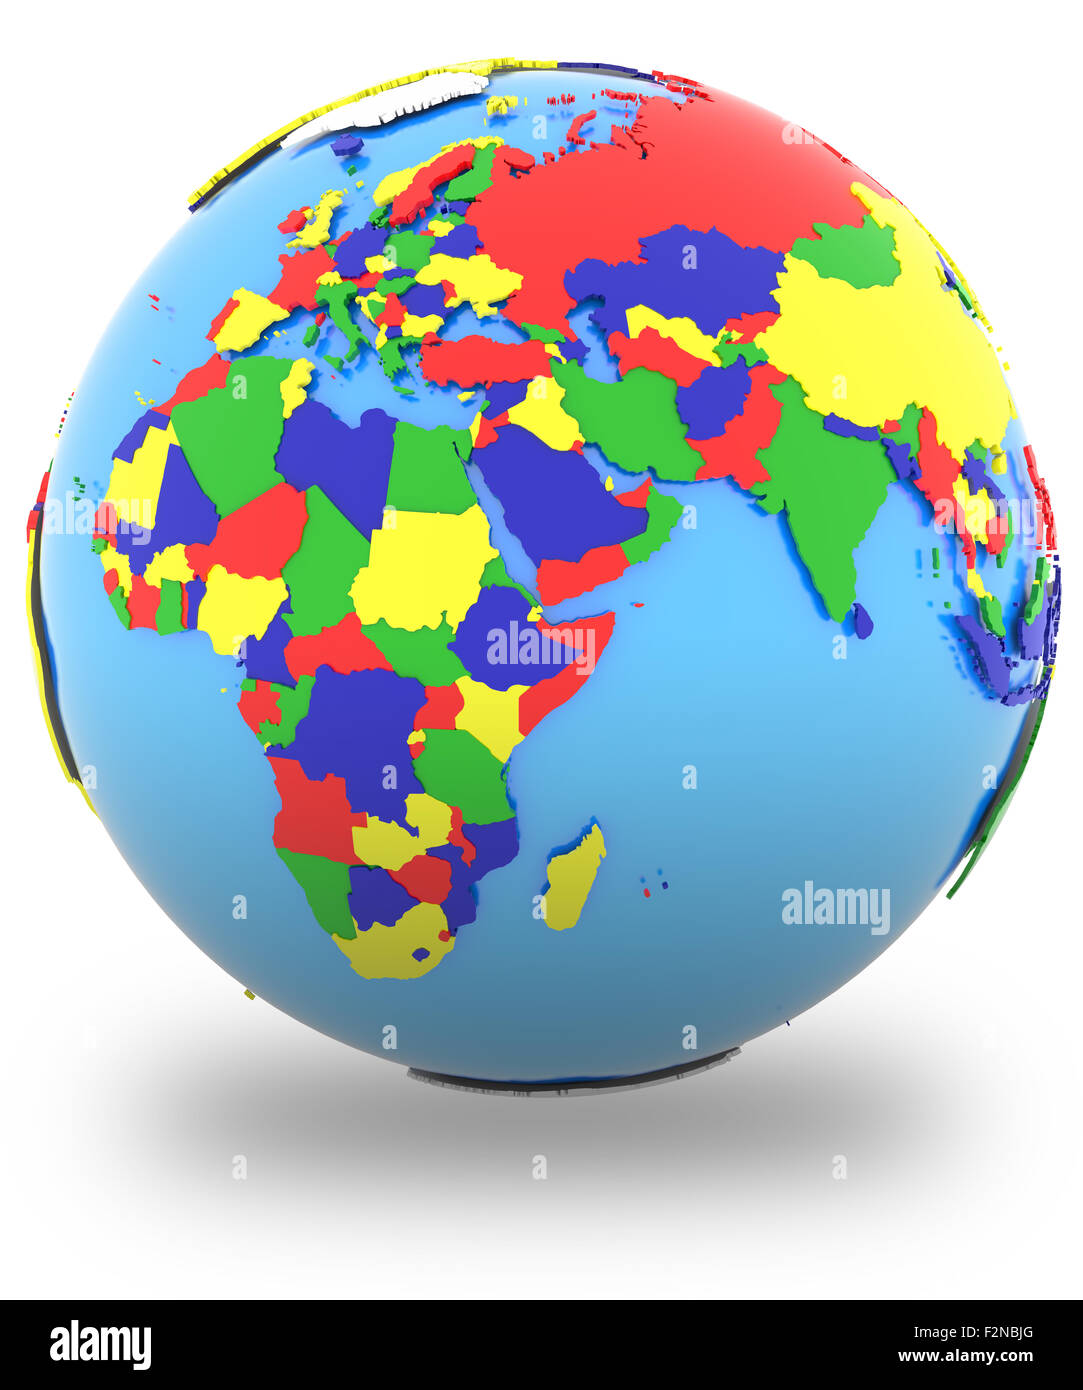 Map Of Earth Countries.Eastern Hemisphere Political Map Of The World With Countries In